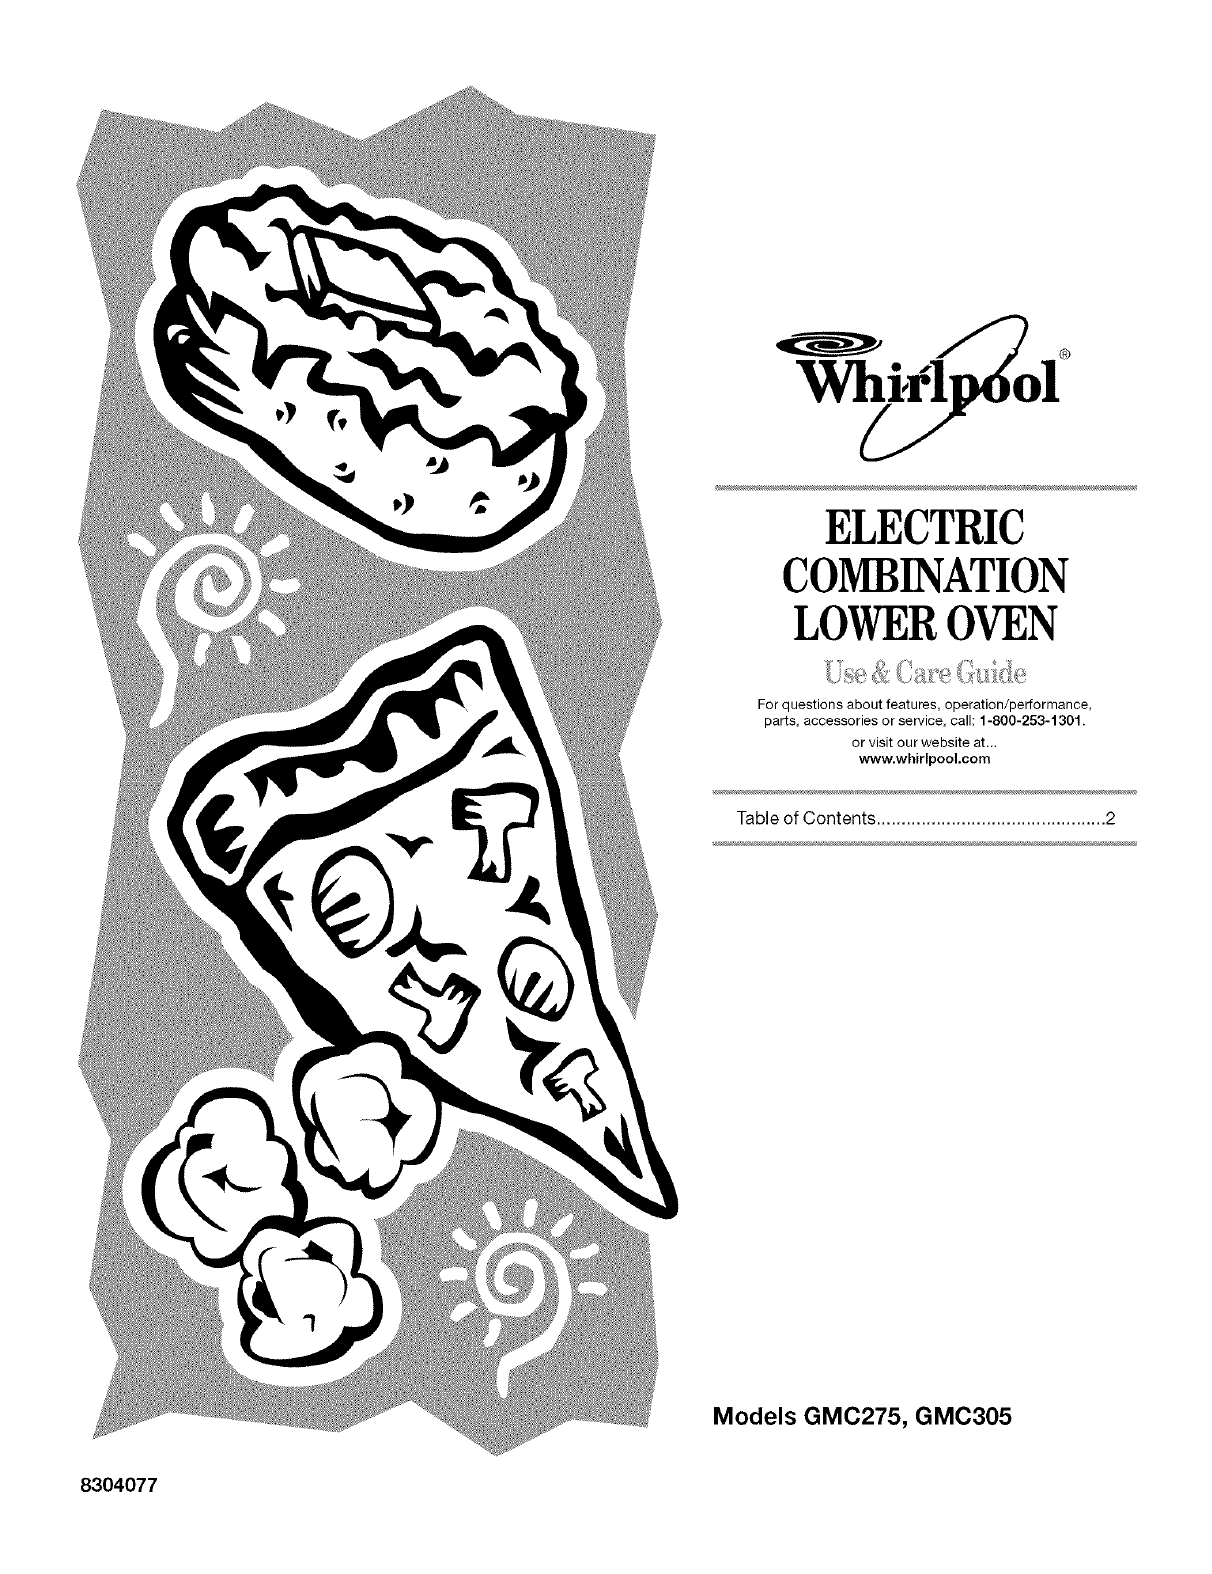 Whirlpool Combination Microwave Oven Manual Pdf